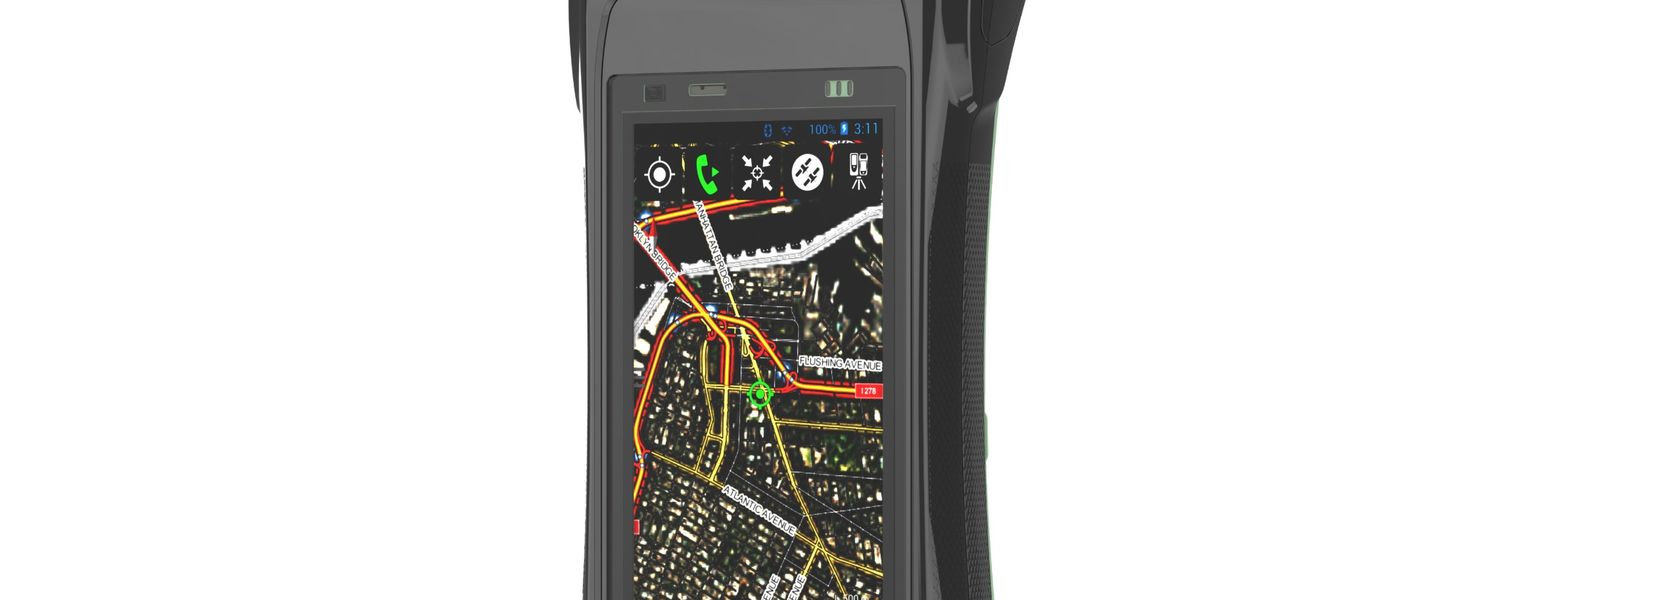 New Leica GIS data collection solution